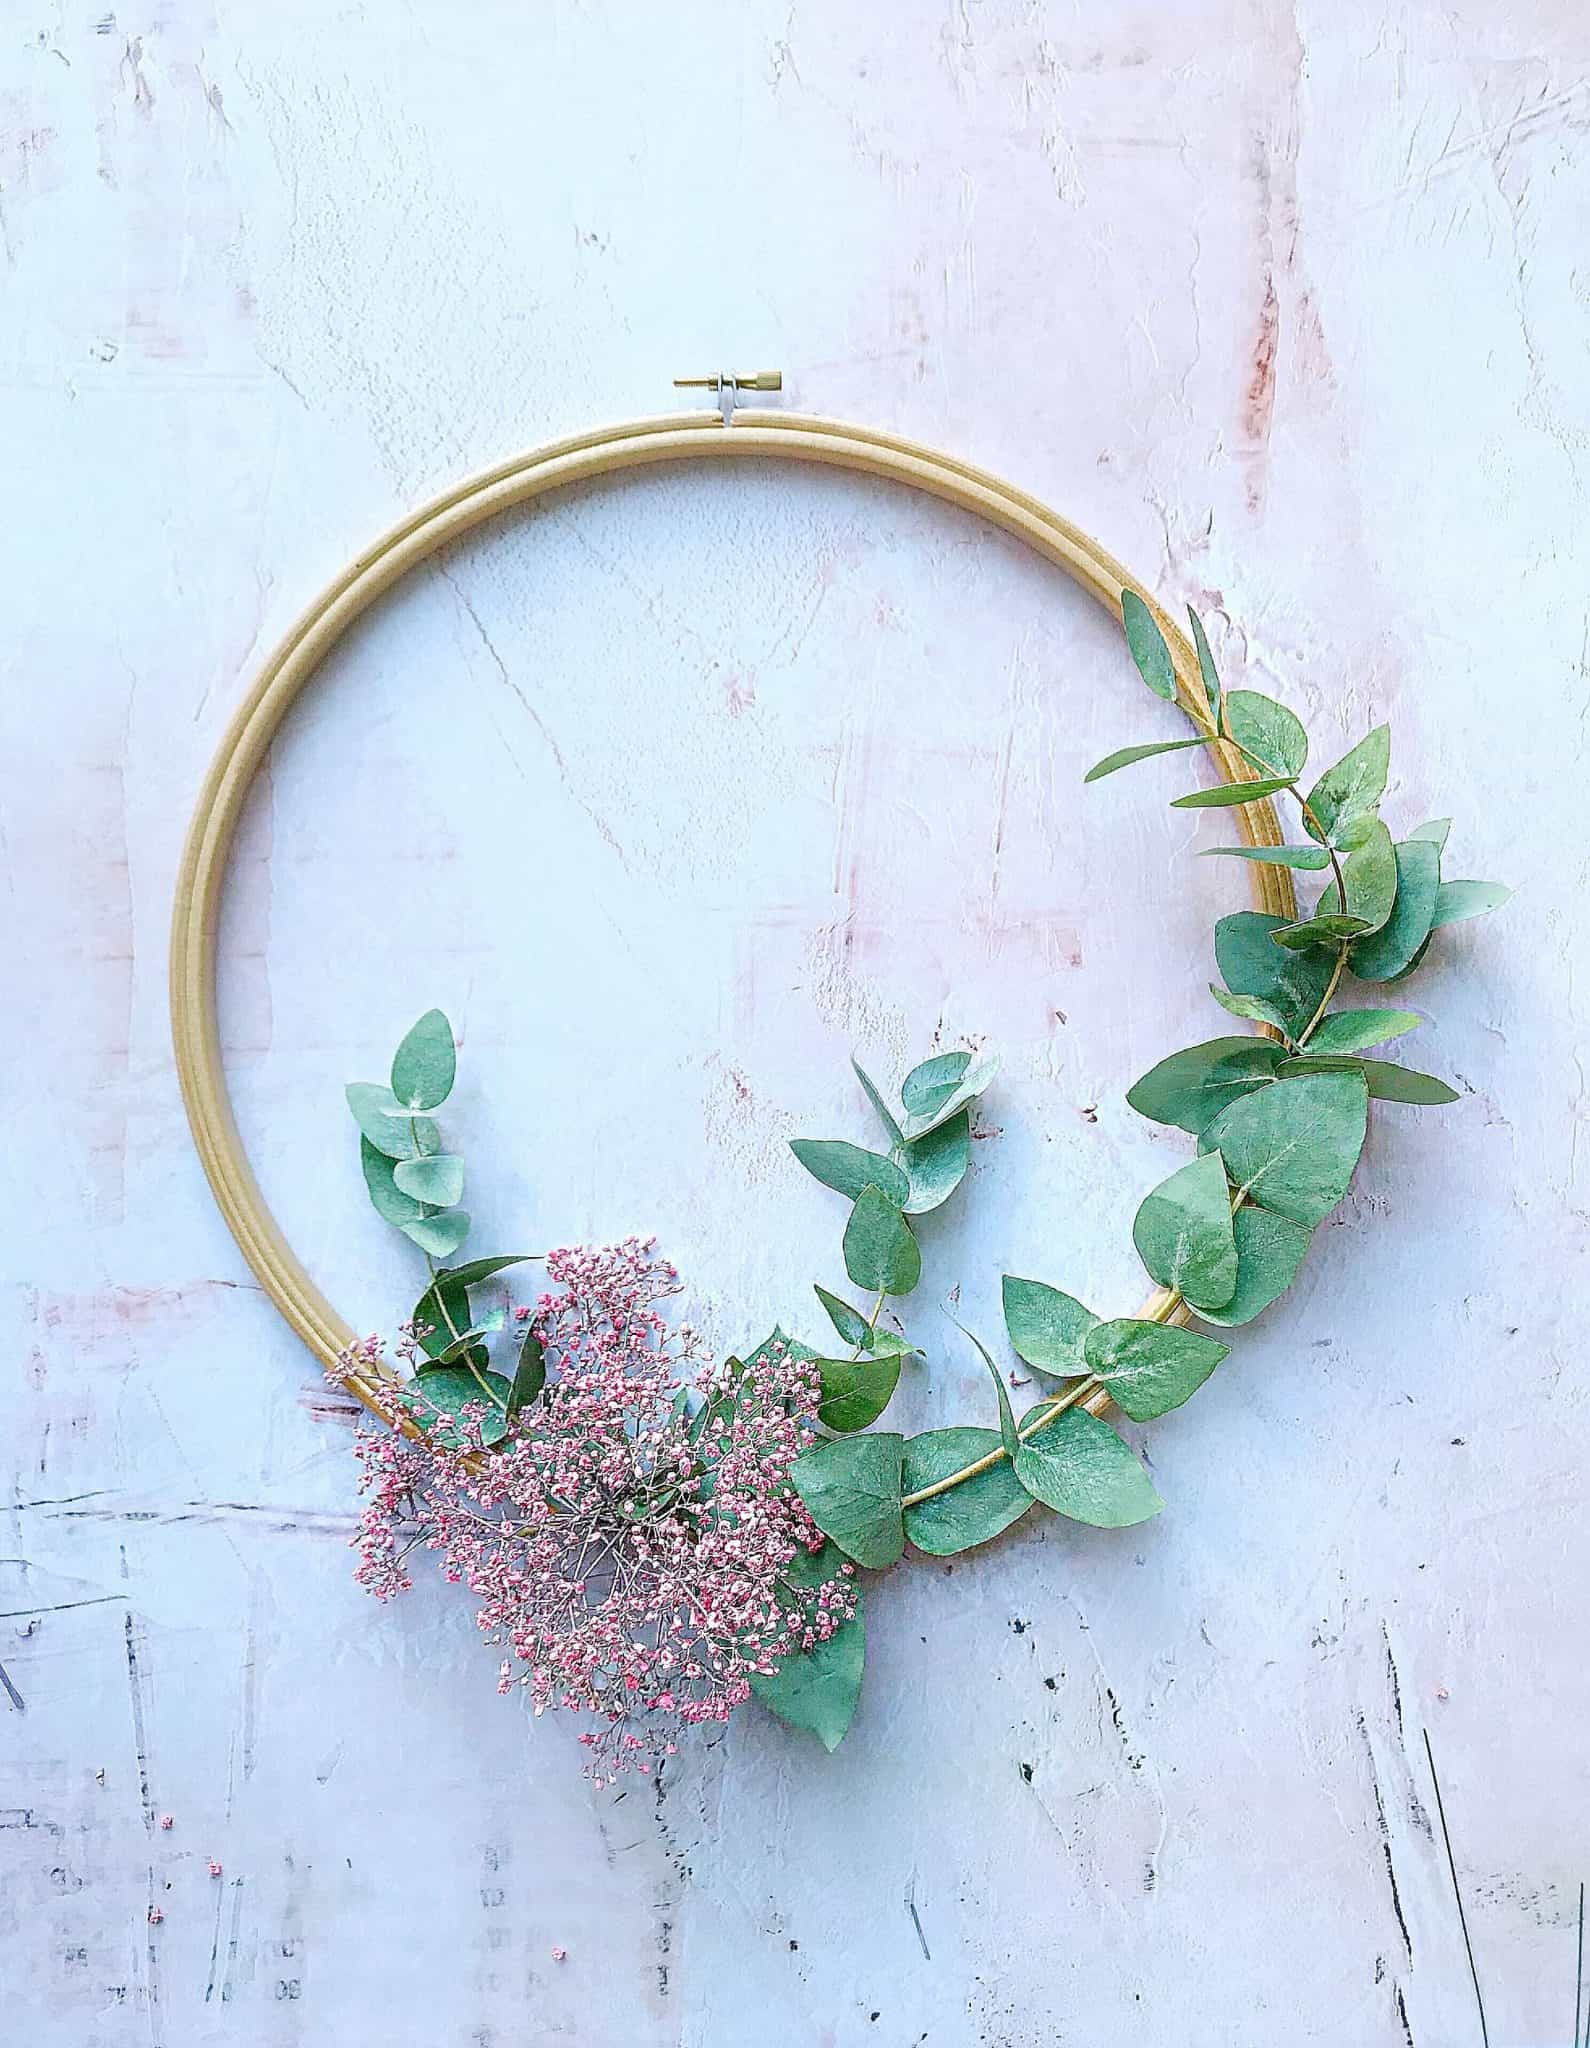 How to make winter wreaths